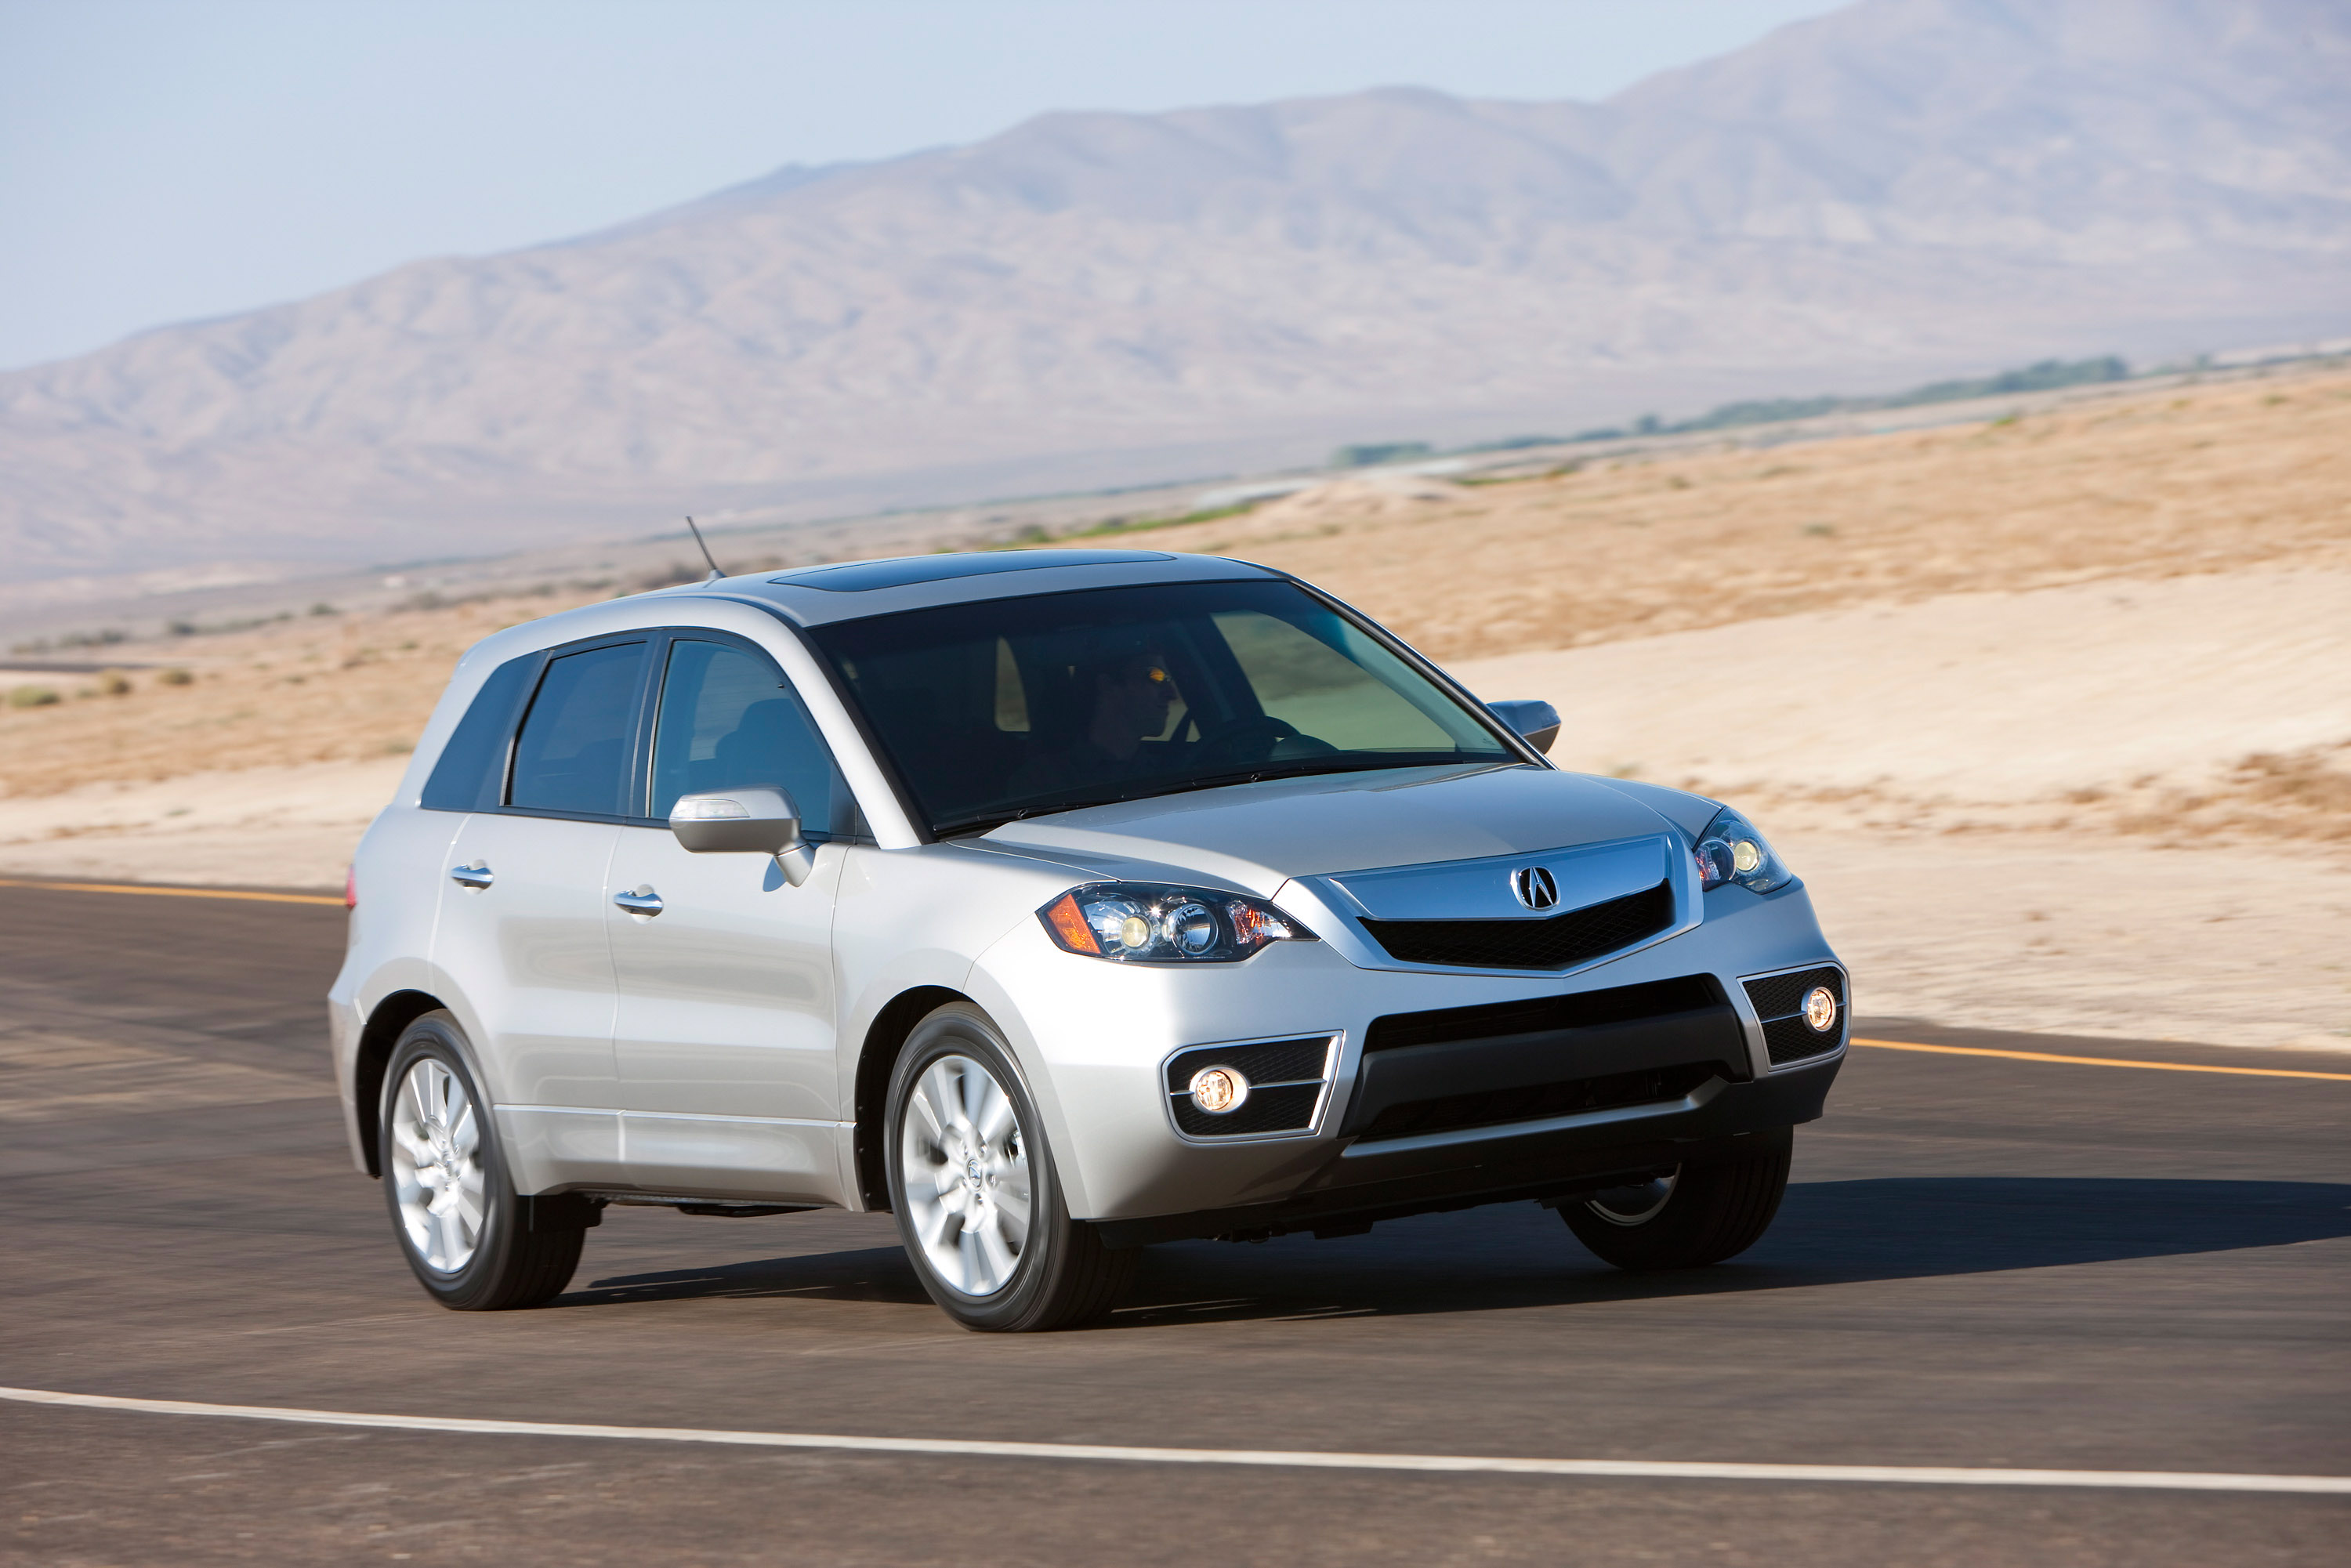 rdx the electronics bluetooth found cell navigation cheers phone acura mount forums hhdgzic audio pic perfect inside for